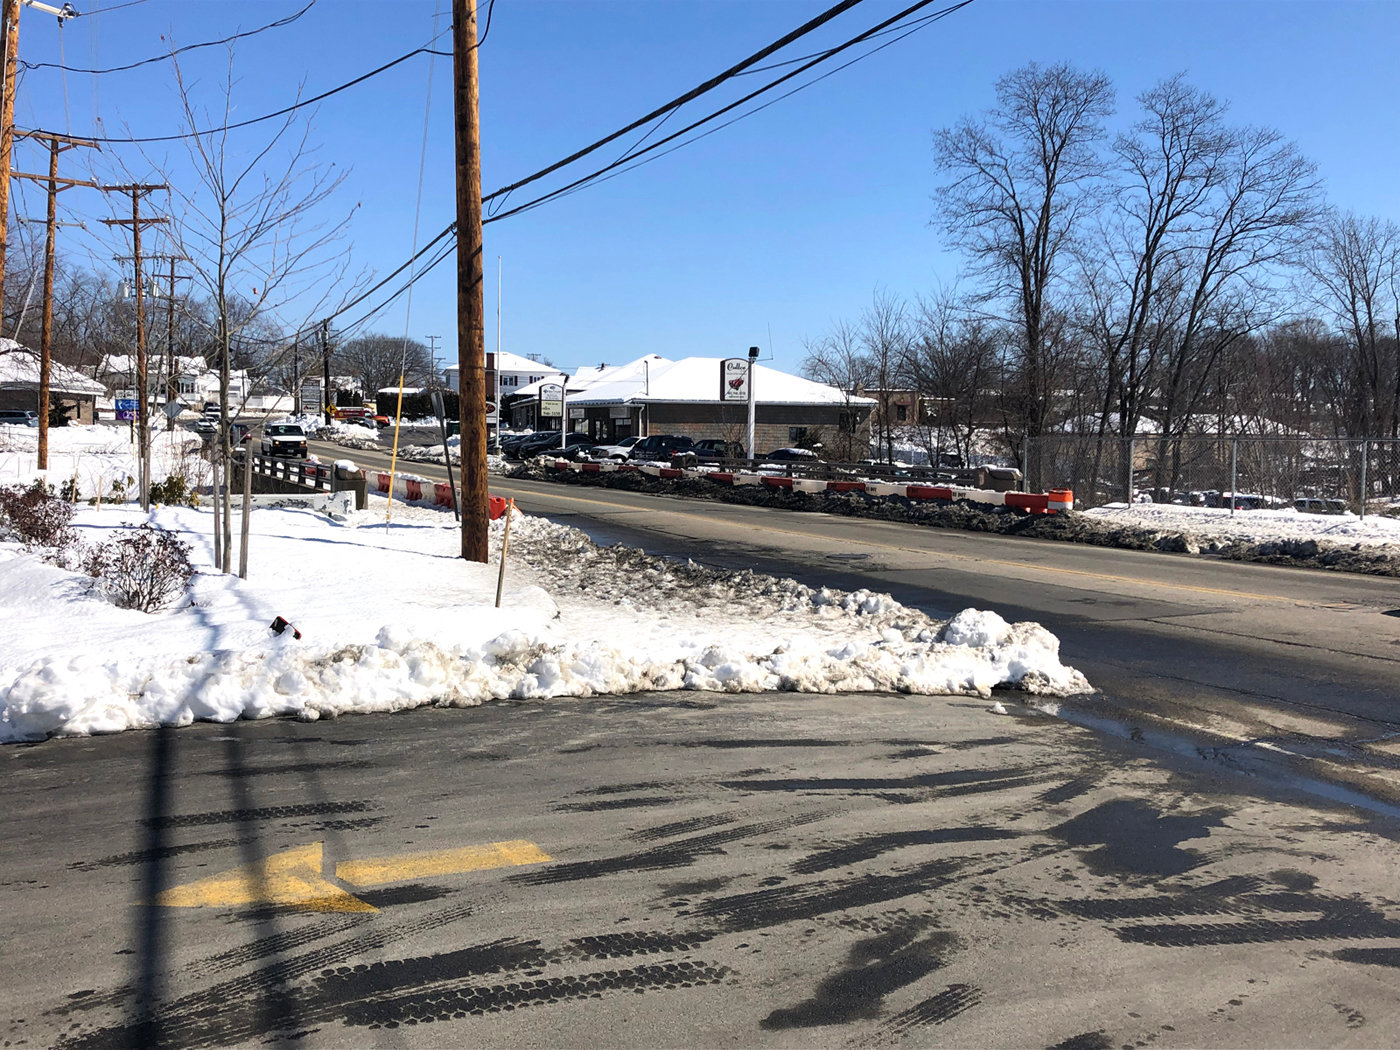 WORK AHEAD: A detour will be put in place starting March 11 for eastbound vehicles on Route 12 as the state conducts rehabilitation work on the bridge carrying Park Avenue over the Pocasset River.